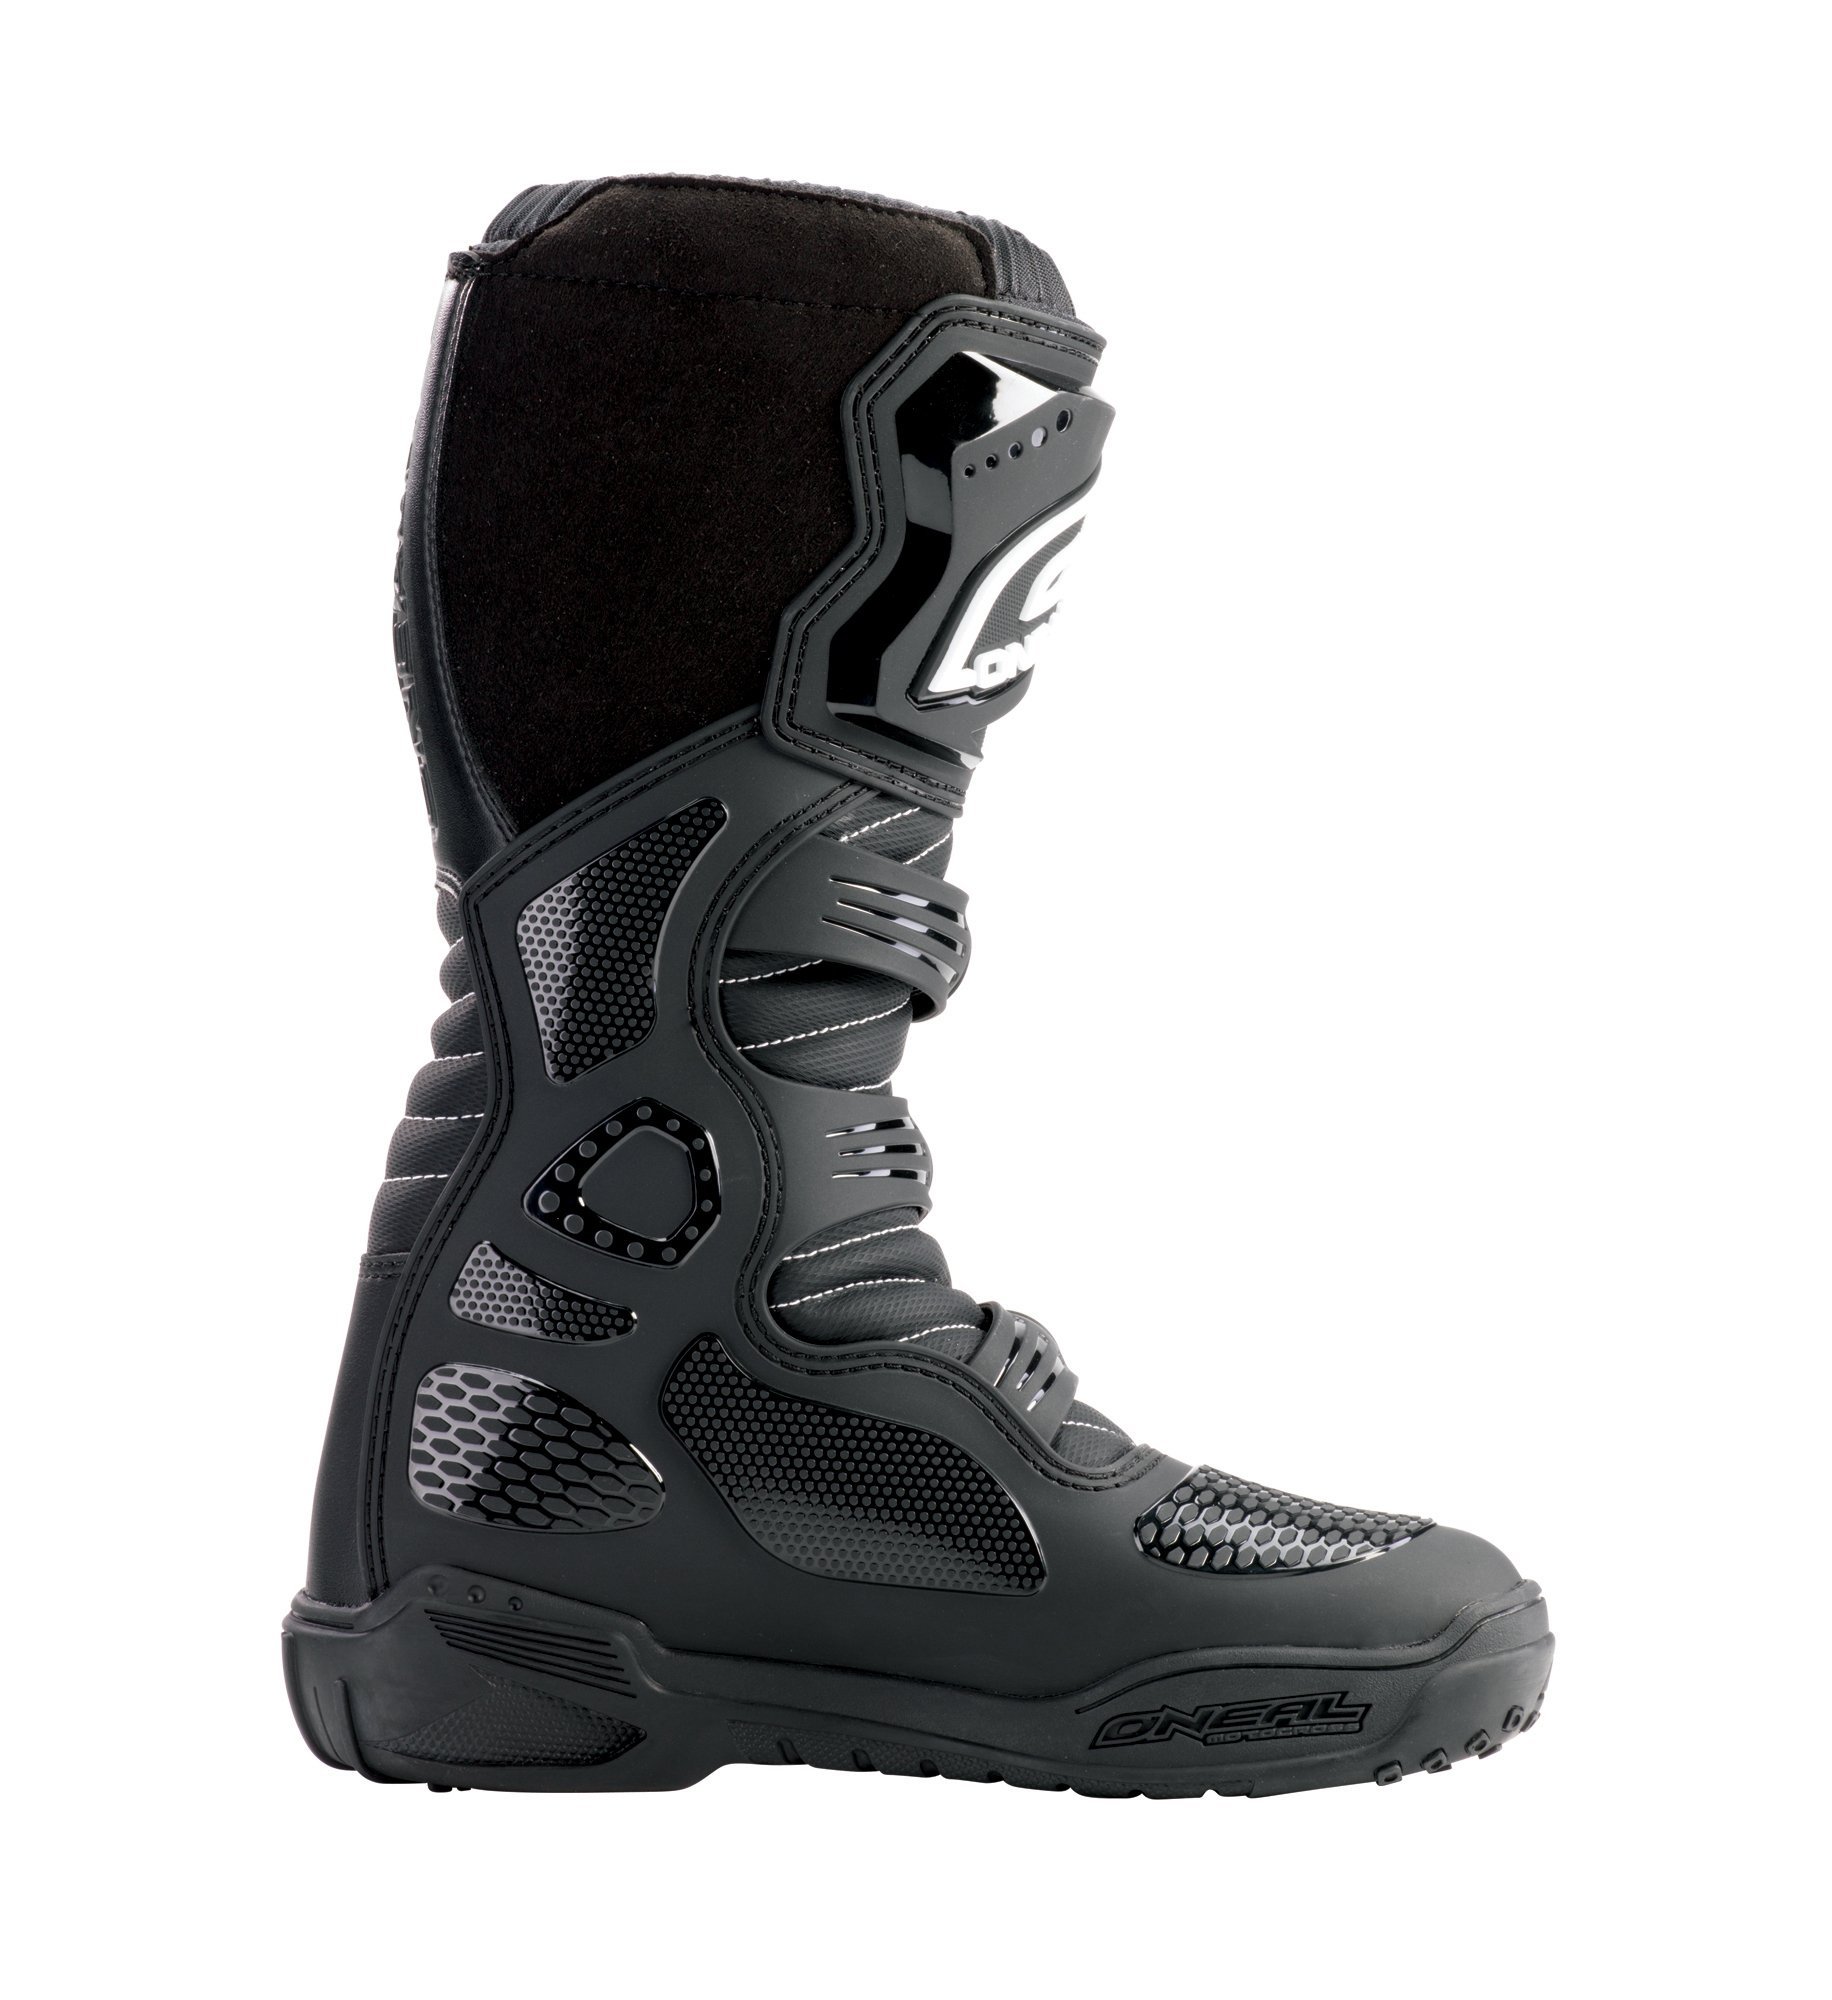 O'Neal Men's Element Boots (Black, Size 15) by O'Neal (Image #7)